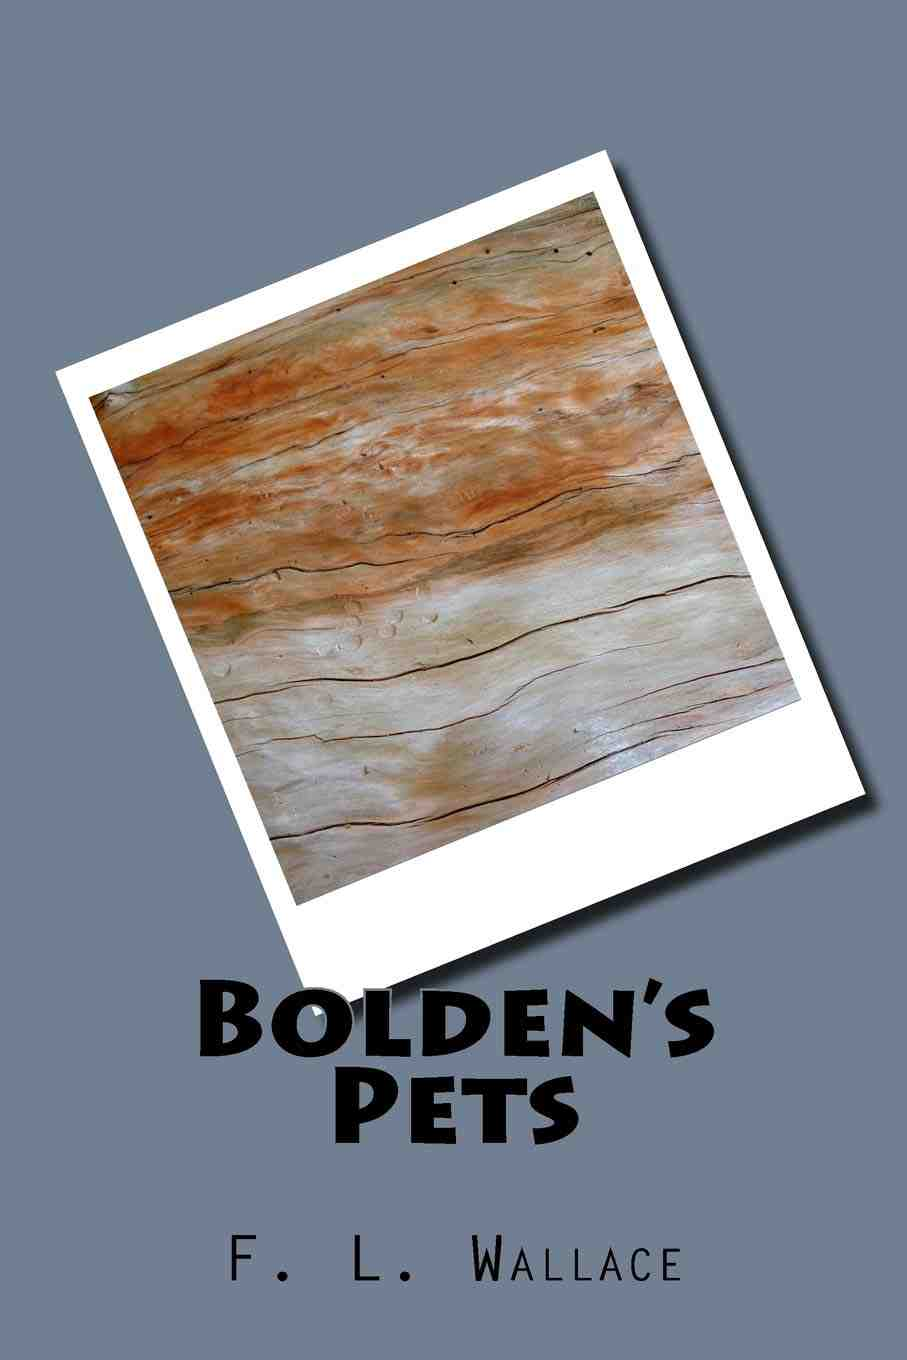 Bolden's Pets by